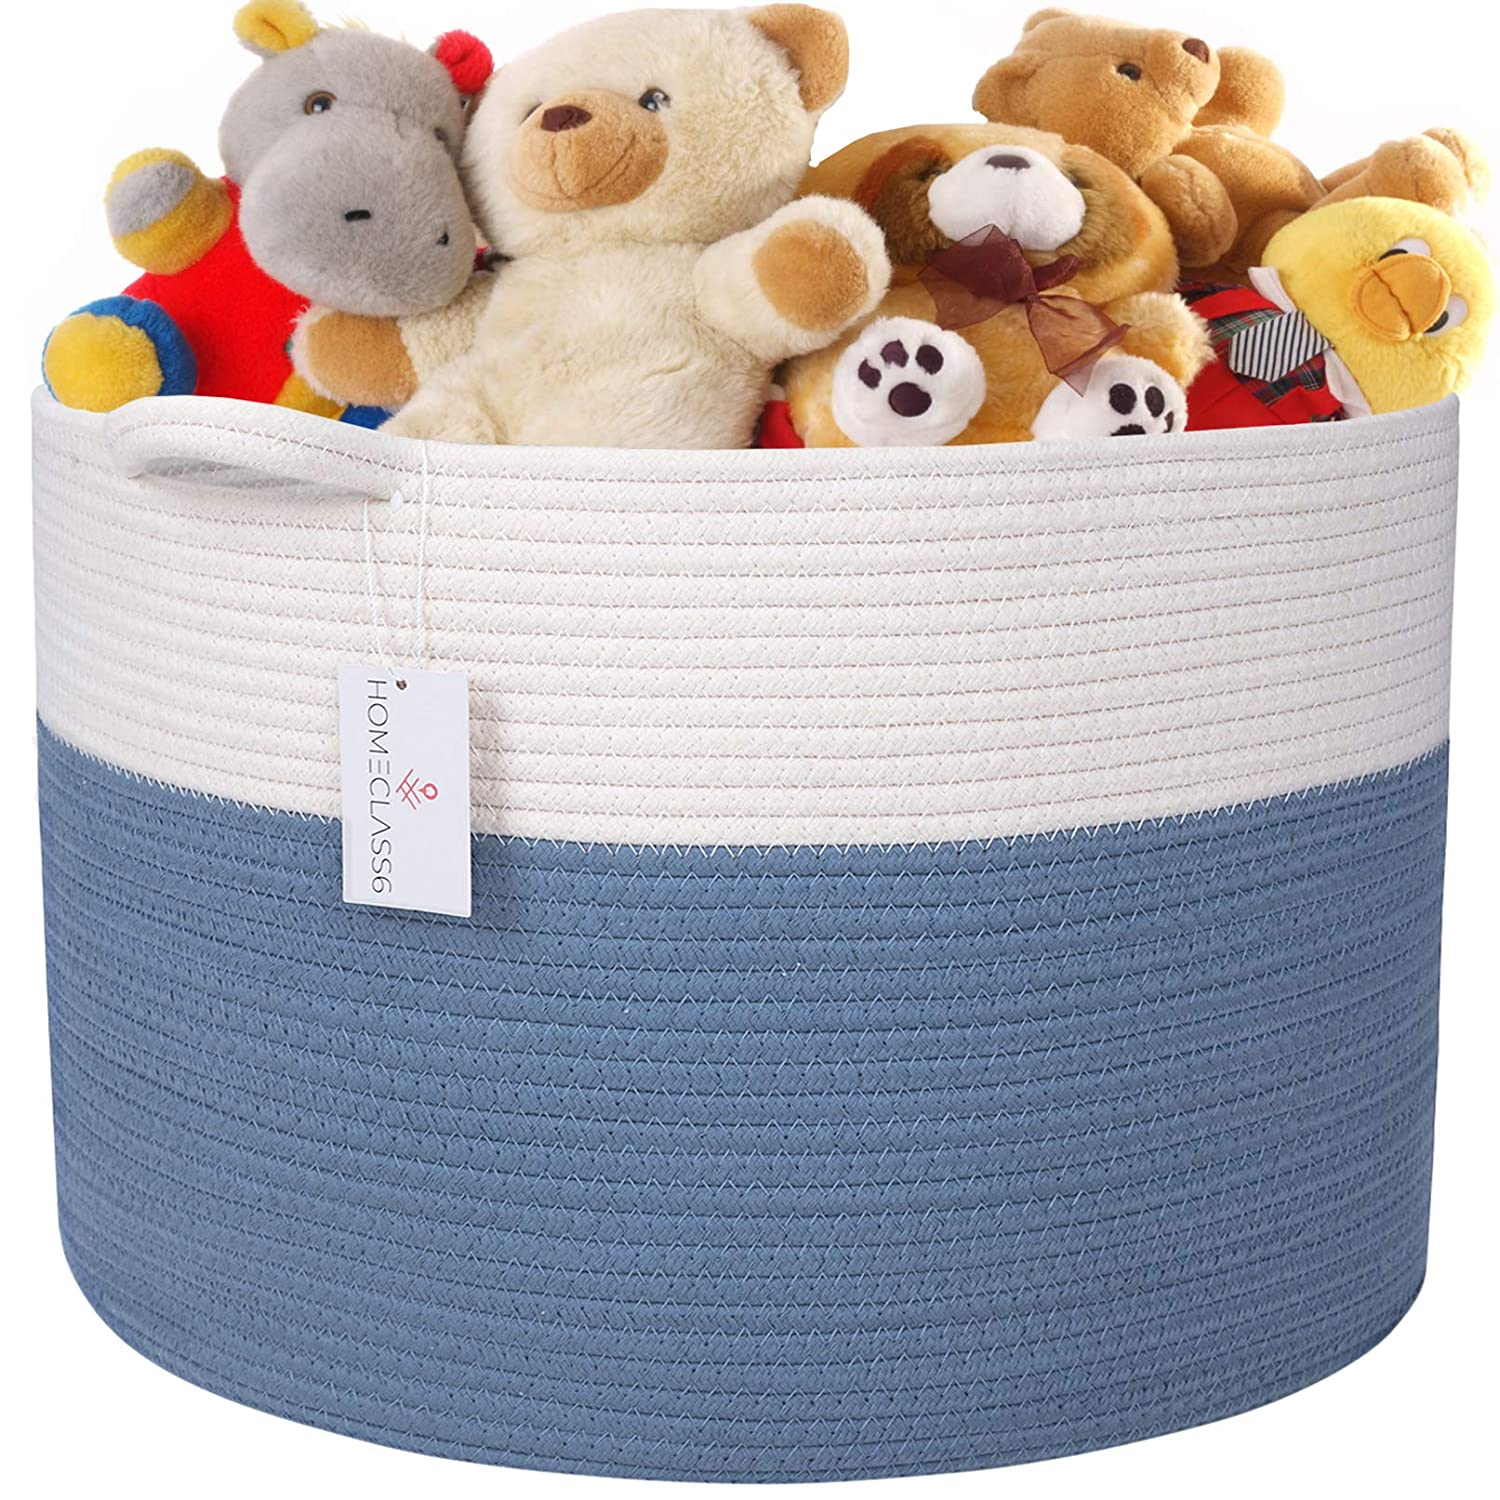 HOMECLASS6 XXL Cotton Rope Toy Storage Basket - 20 x 20 x 13.3 inch. Blue Woven Basket for Blankets, Throws, Toys, Pillows, and baby Room. Round Blanket Basket with Handles. 100% Natural Cotton.